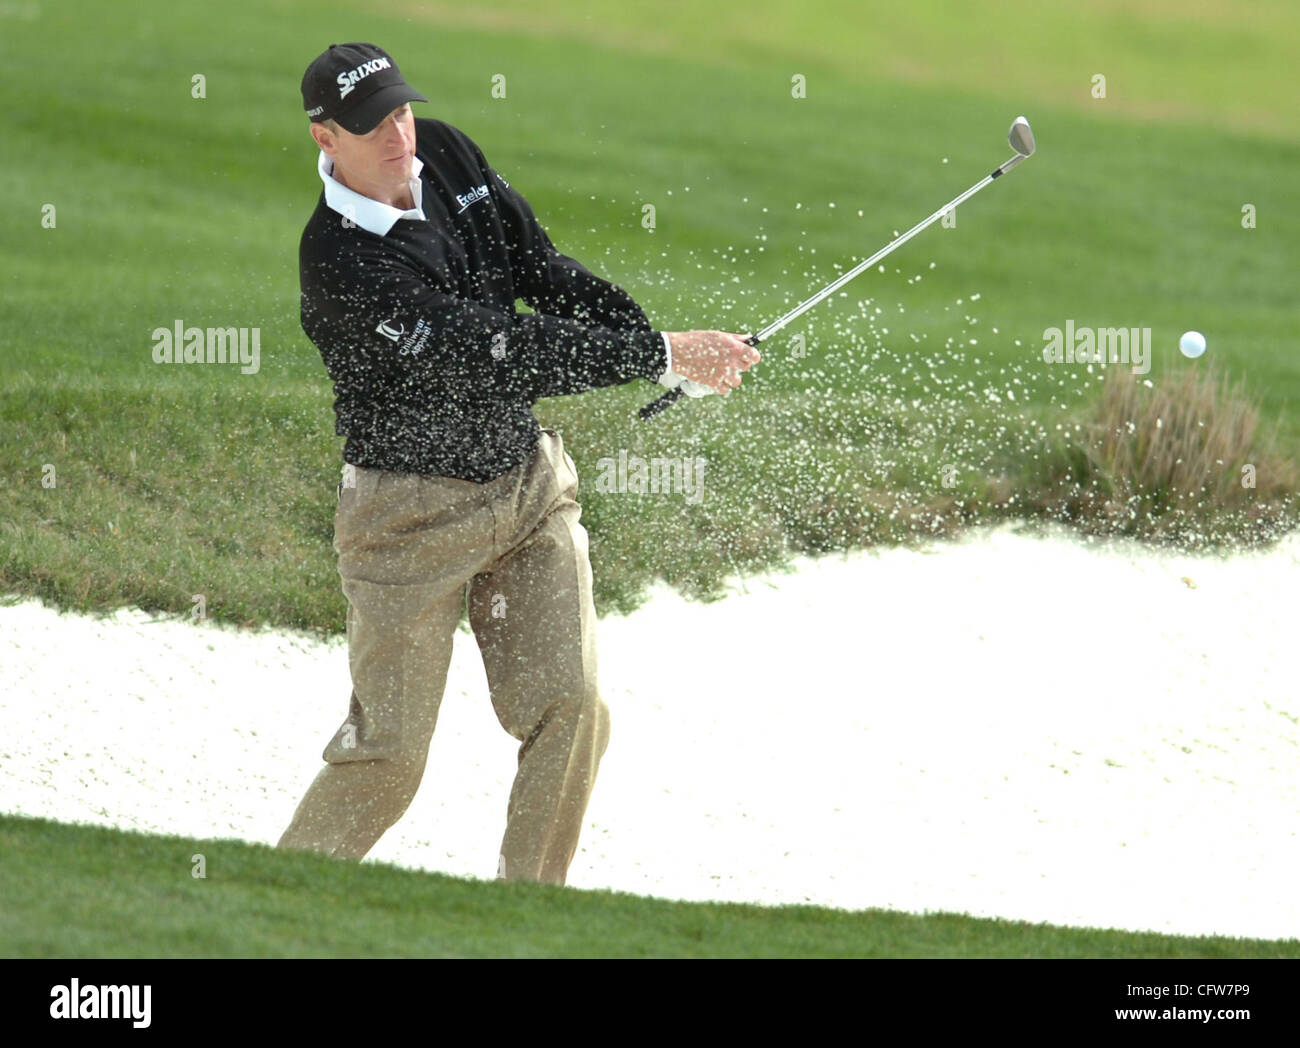 In Pebble Beach, Calif., on Saturday, February 10, 2007, Jim Furyk  hits the ball out of the bunker on the 8th green - Stock Image